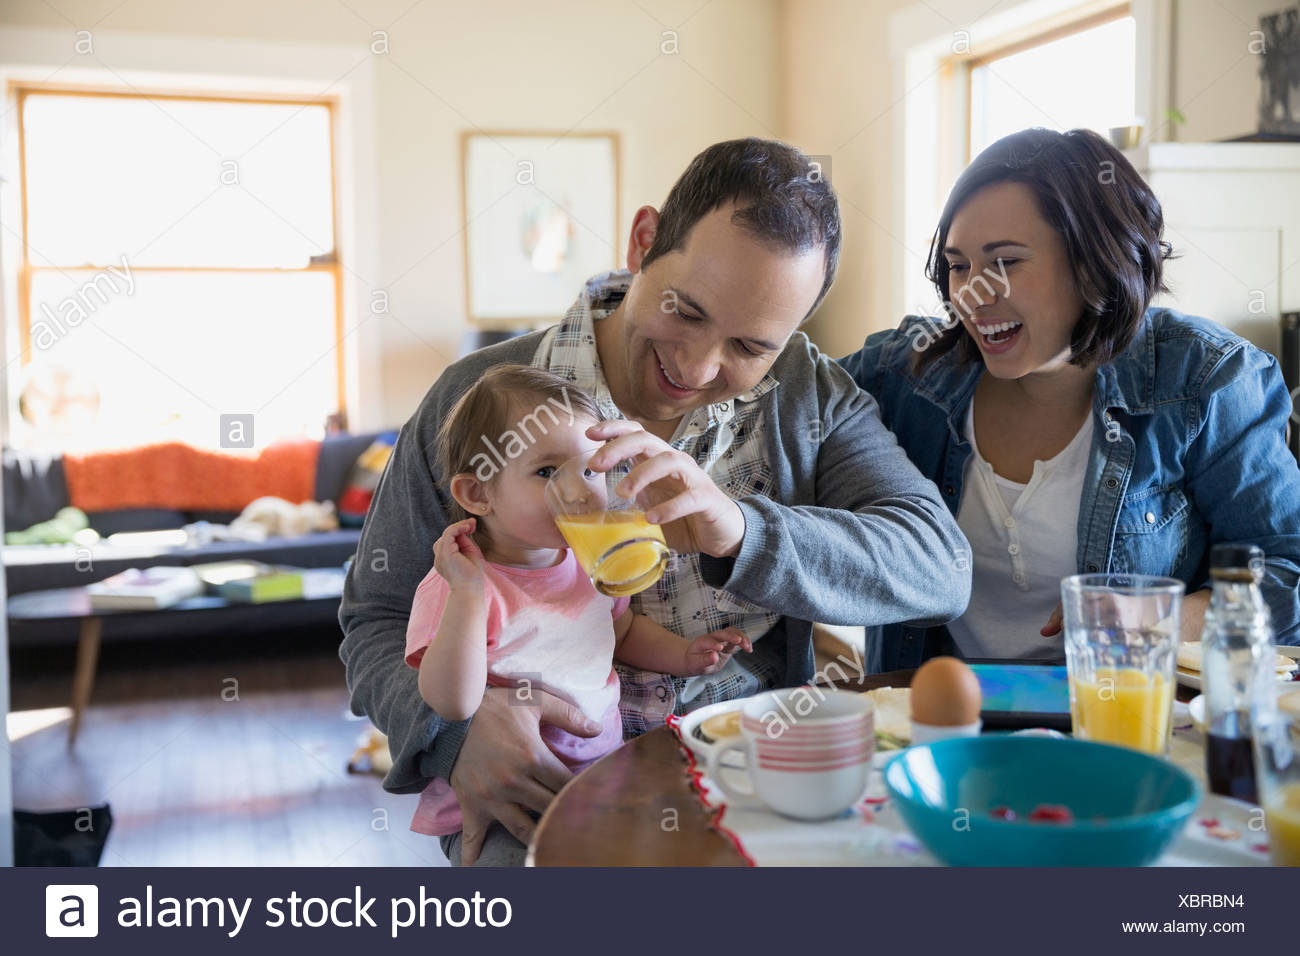 Young family enjoying breakfast at dining table - Stock Image